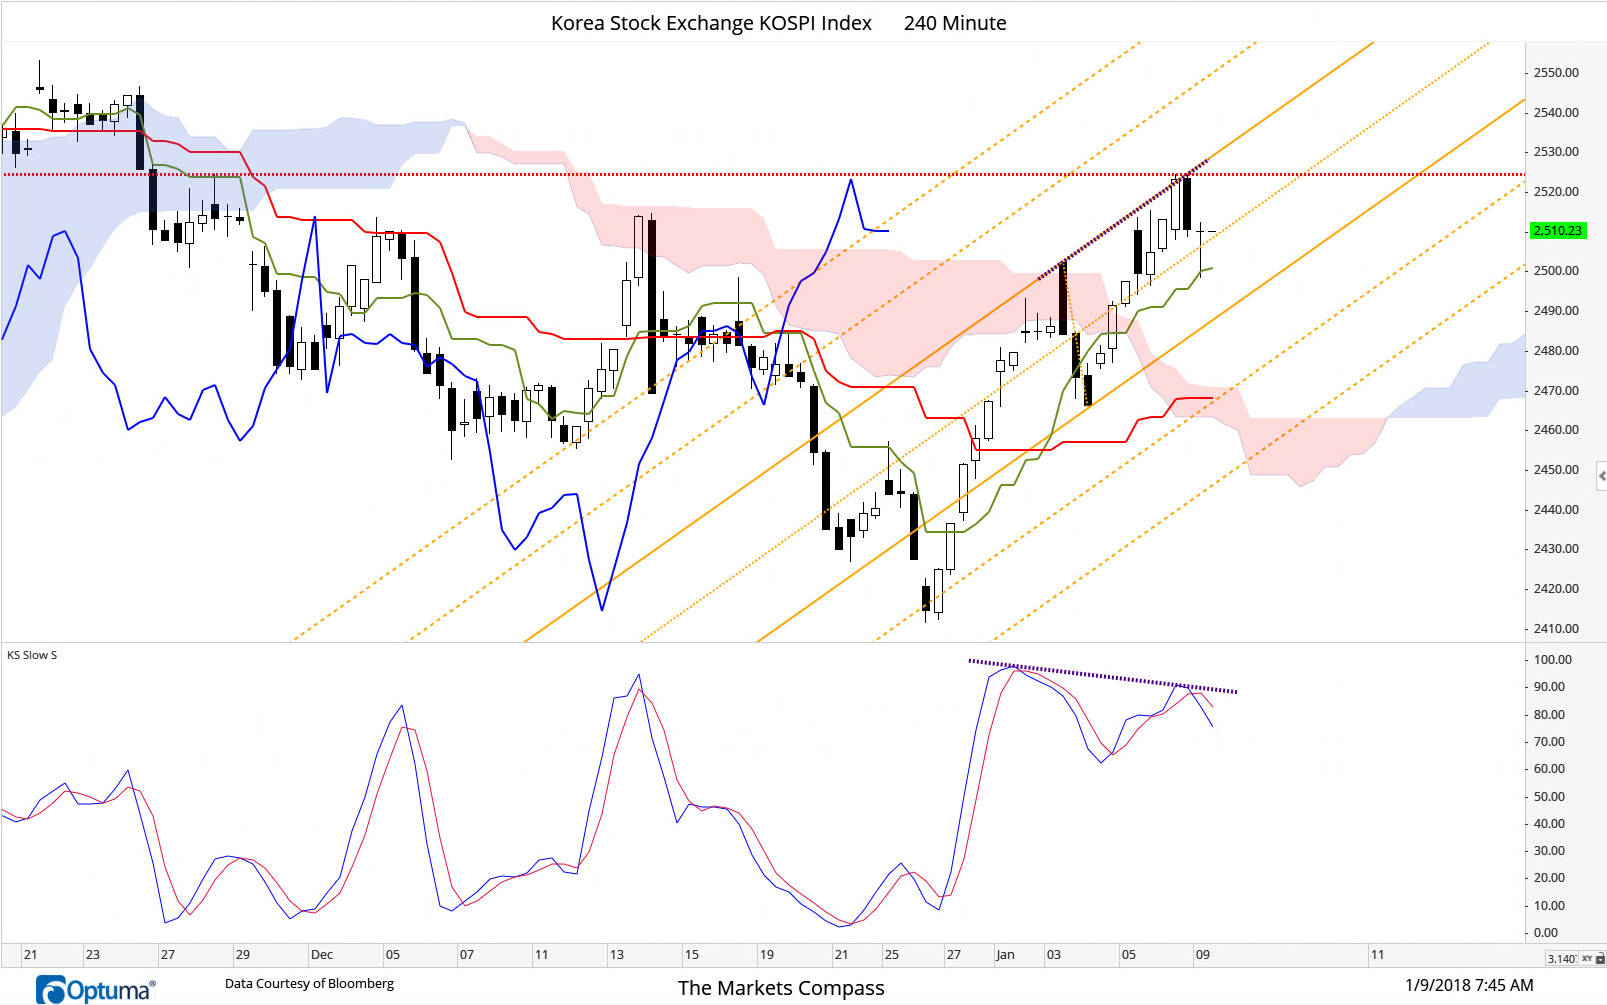 January 9, 2018 -  The KOSPI Index edged through the upper span of the cloud for the first time since the last days of November on Friday. Since the start of this week both price and the Chikou (lagging line in blue) have tracked above the cloud until the Upper Parallel of the Schiff Adjust Pitchfork (in orange) and divergence with the slow stochastic (purple dashed line) has temporarily has stymied a further advance although prices have held the Median Line on a closing basis since then.